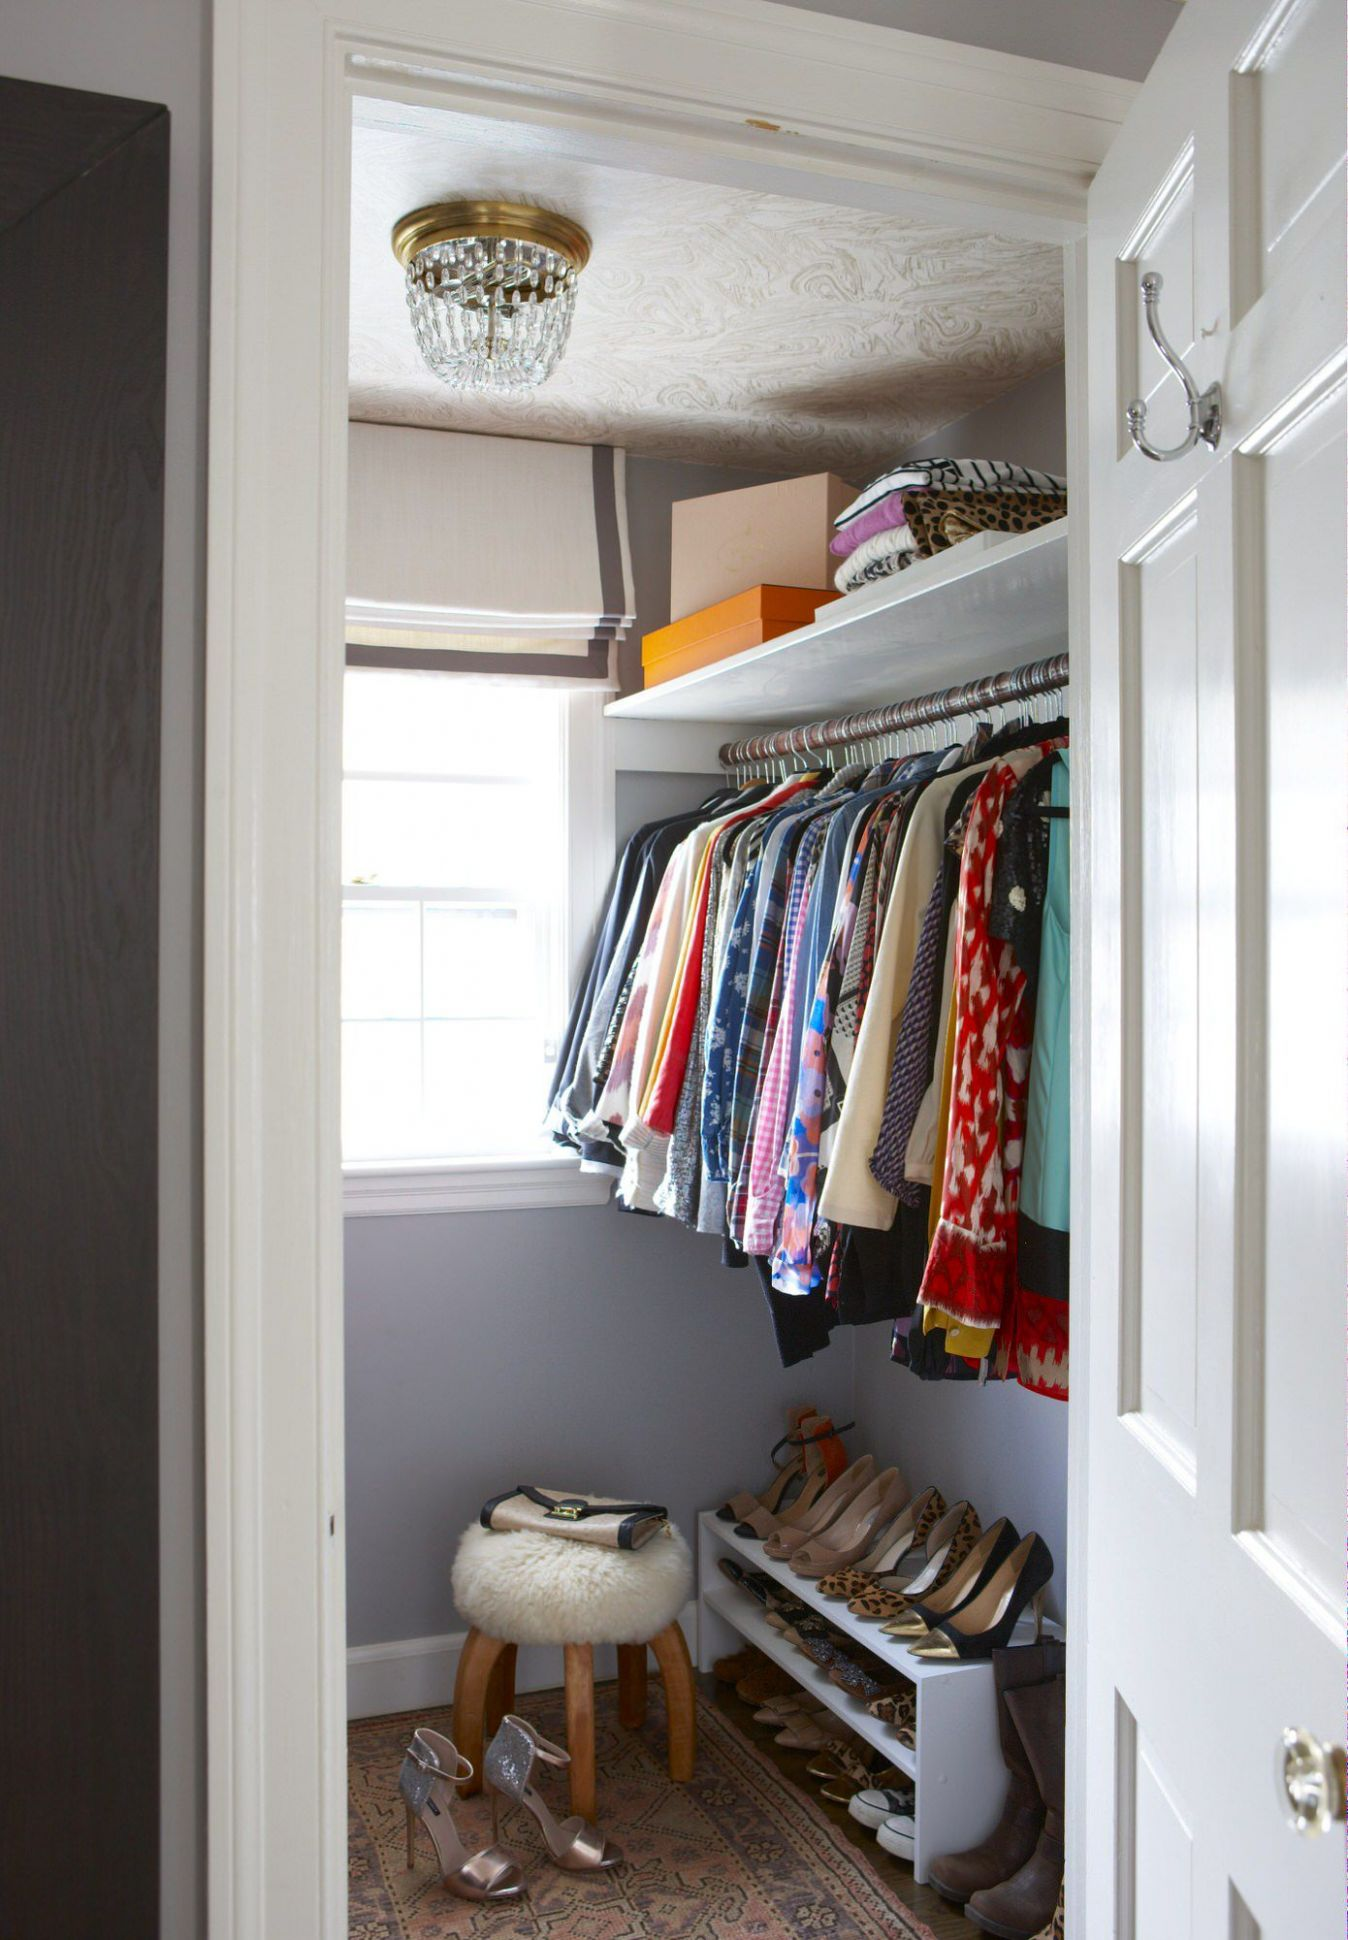 11 Best Small Walk-in Closet Storage Ideas for Bedrooms - closet ideas small spaces